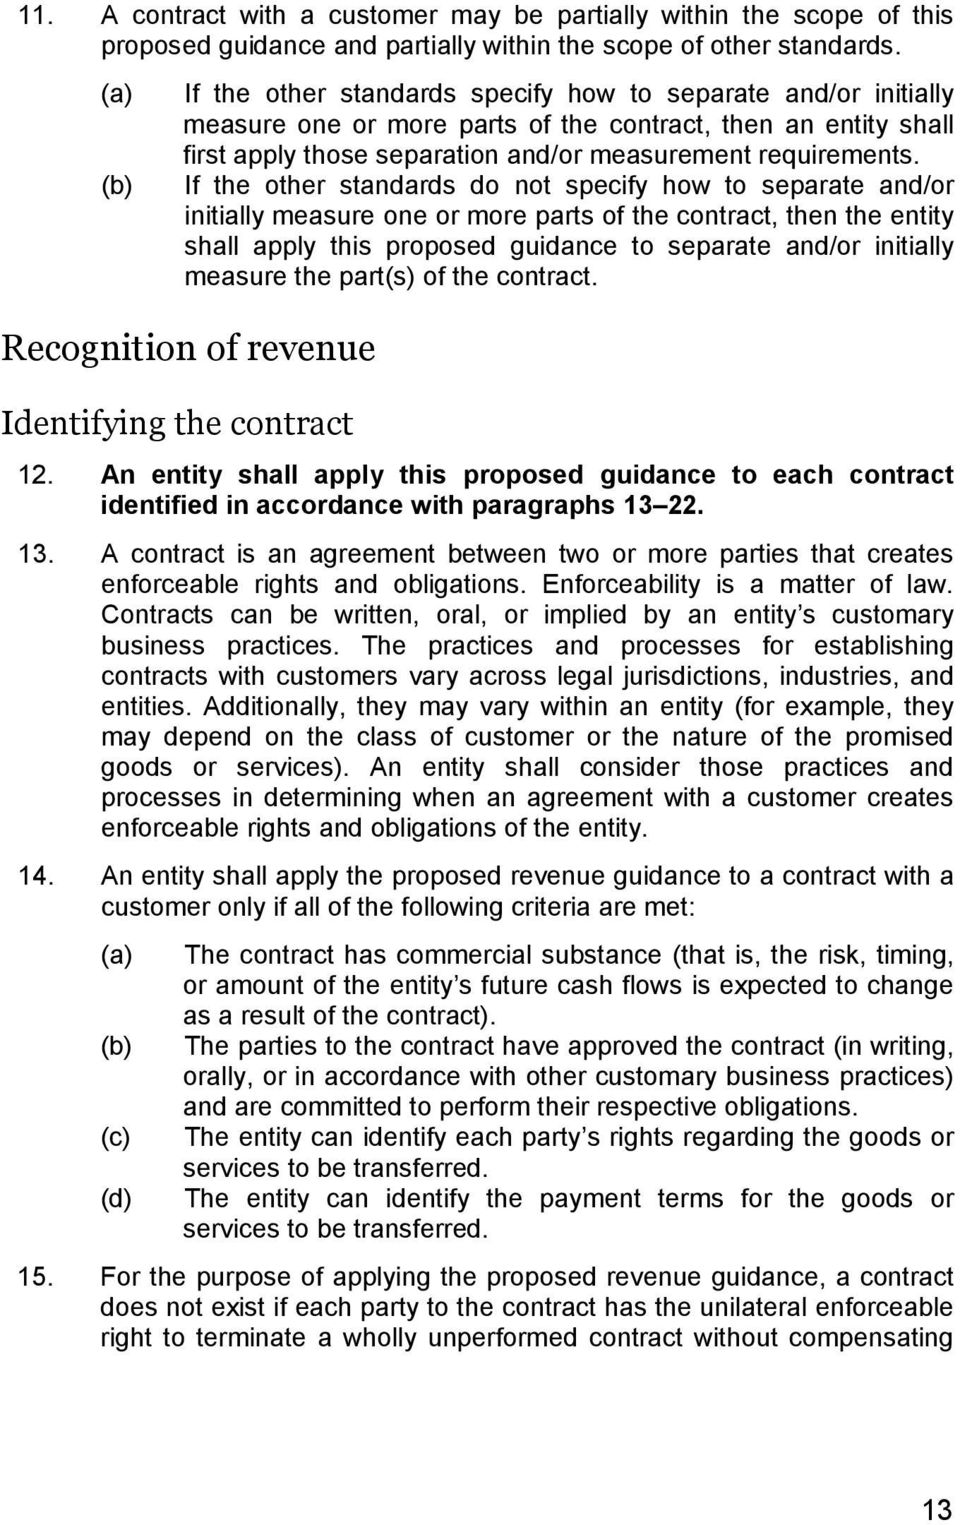 If the other standards do not specify how to separate and/or initially measure one or more parts of the contract, then the entity shall apply this proposed guidance to separate and/or initially